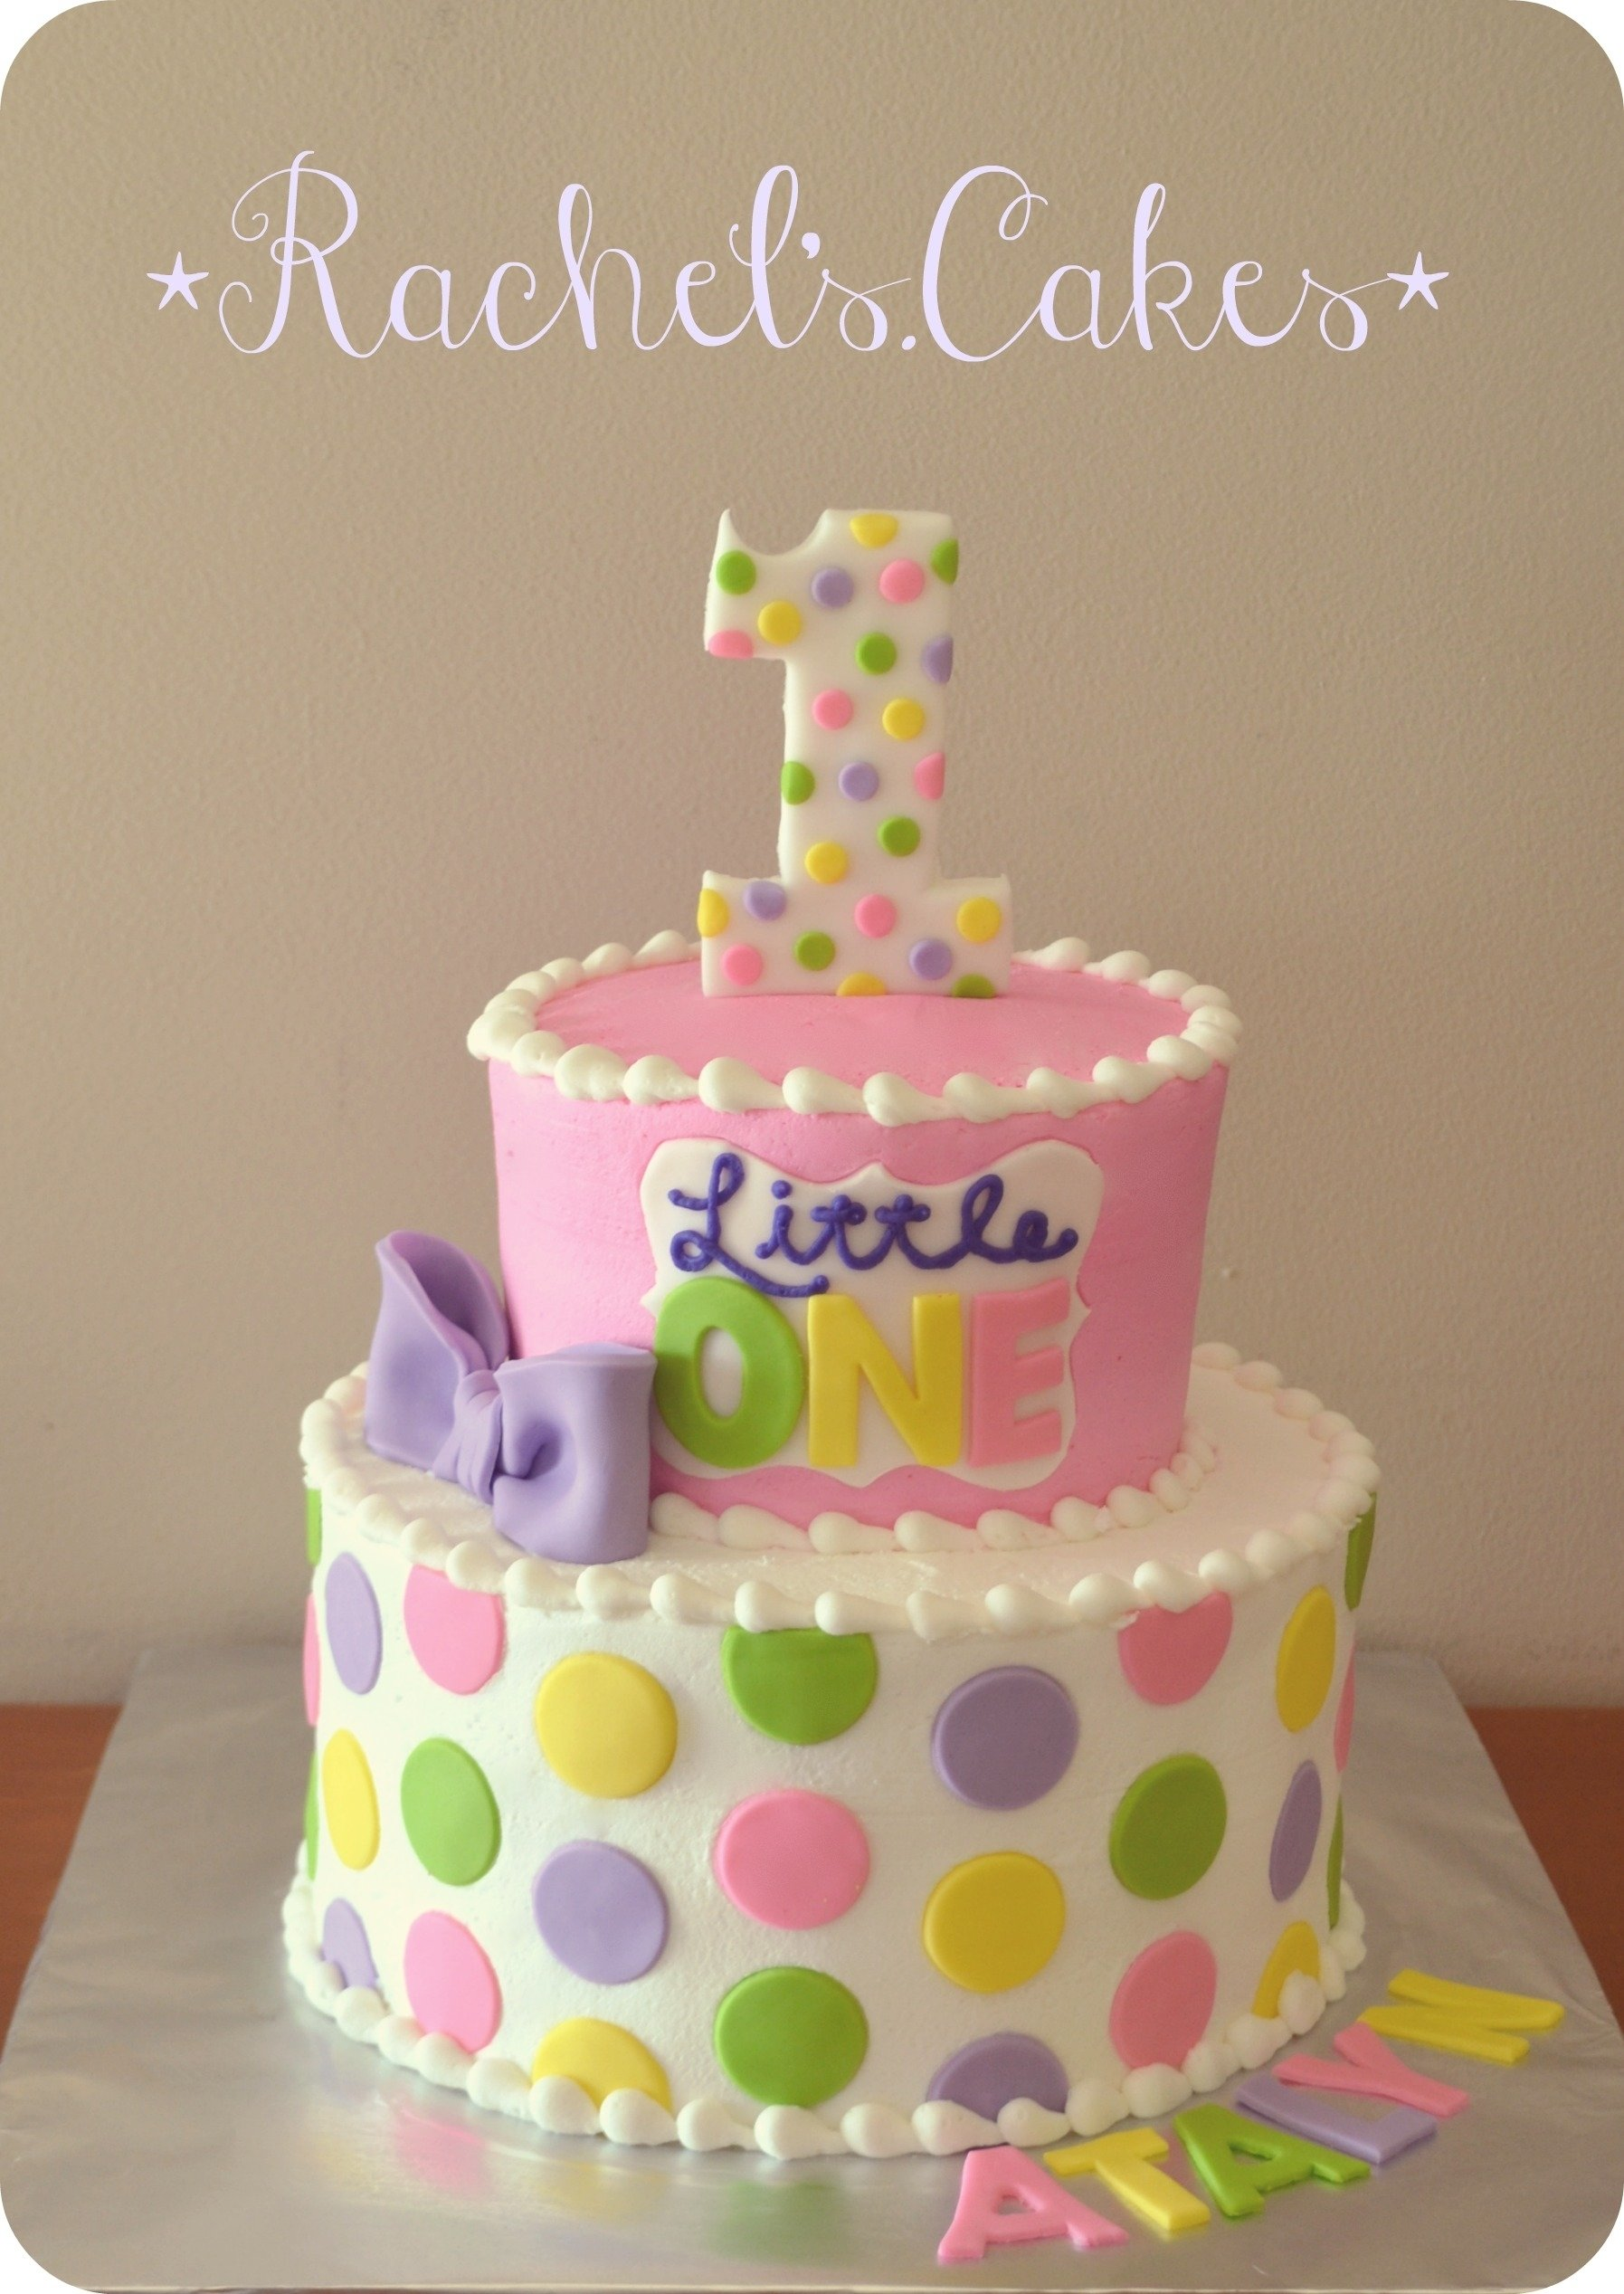 10 Beautiful 1St Birthday Cake Ideas For Girl birthday cakes images mesmerizing 1st birthday cakes girl first 2020